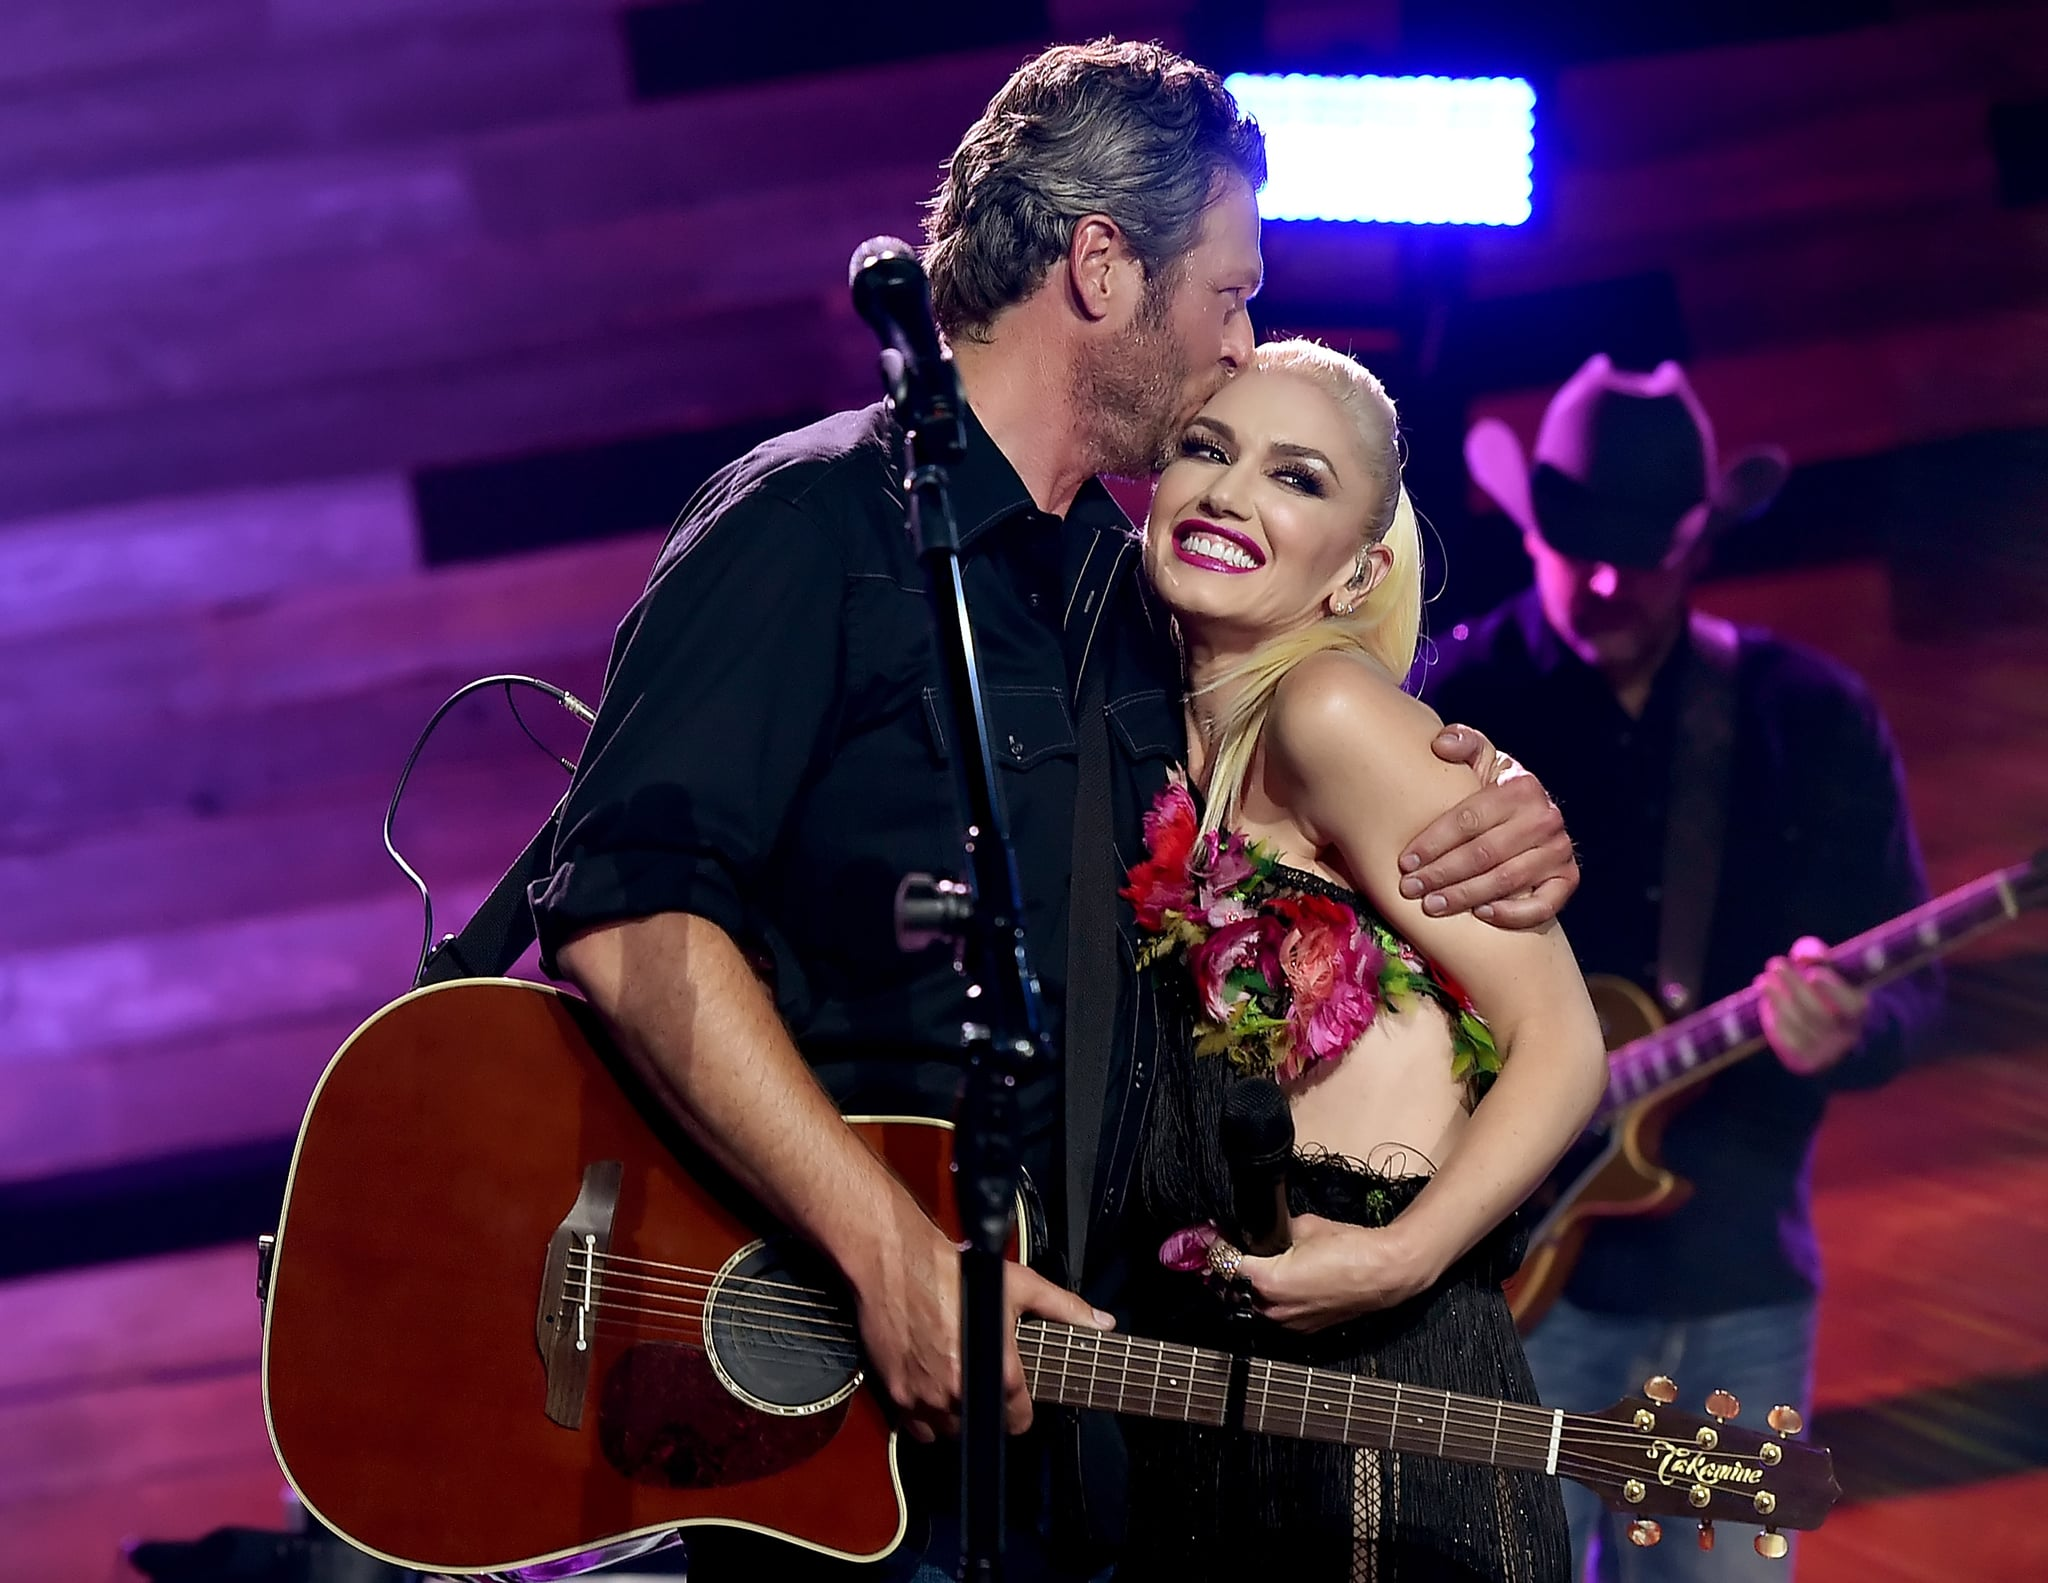 BURBANK, CA - MAY 09:  Singers Blake Shelton (L) and Gwen Stefani perform on the Honda Stage at the iHeartRadio Theatre on May 9, 2016 in Burbank, California.  (Photo by Kevin Winter/Getty Images for iHeartMedia)